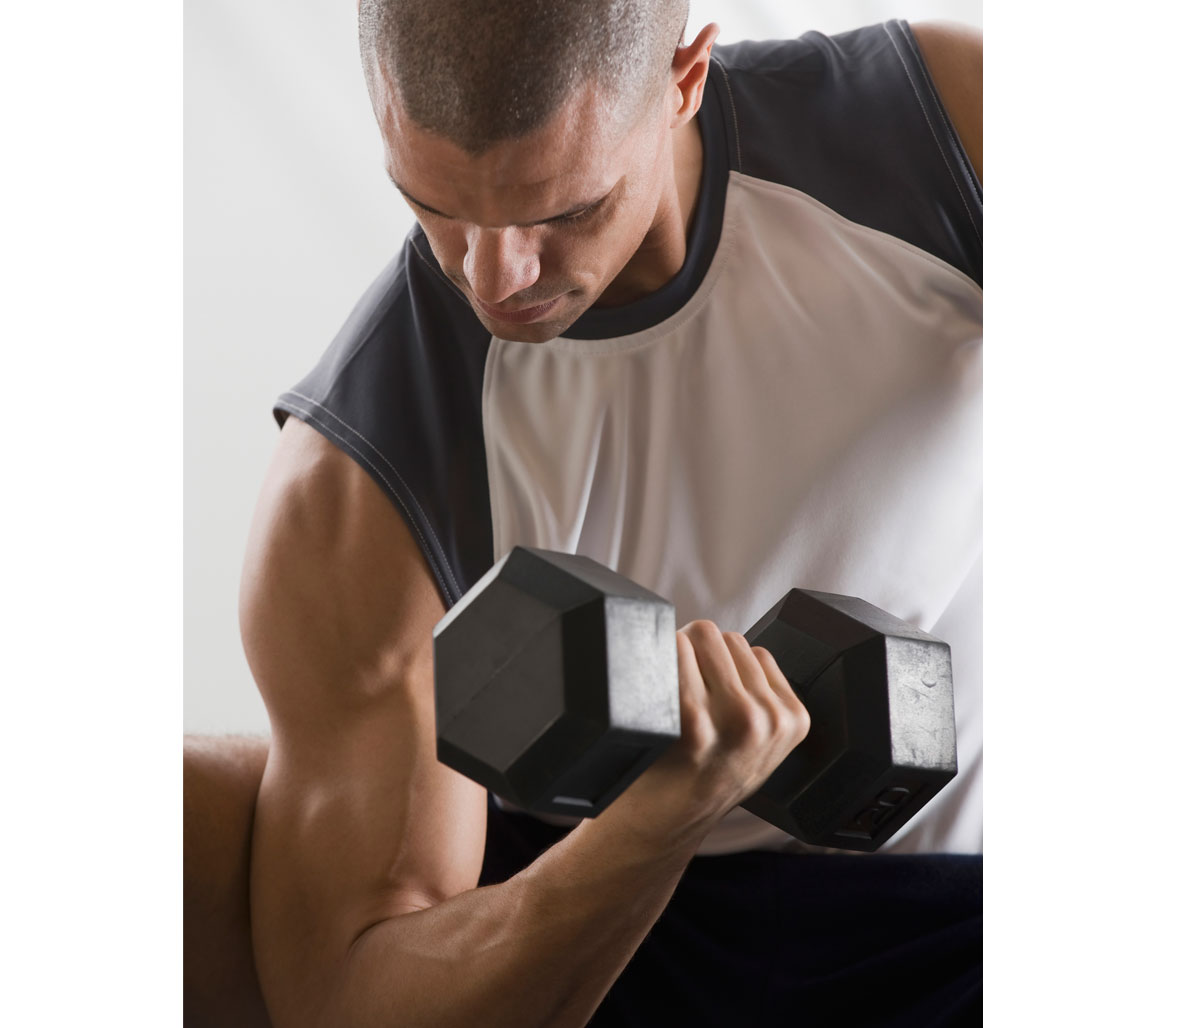 10 different ways to do a bicep curl